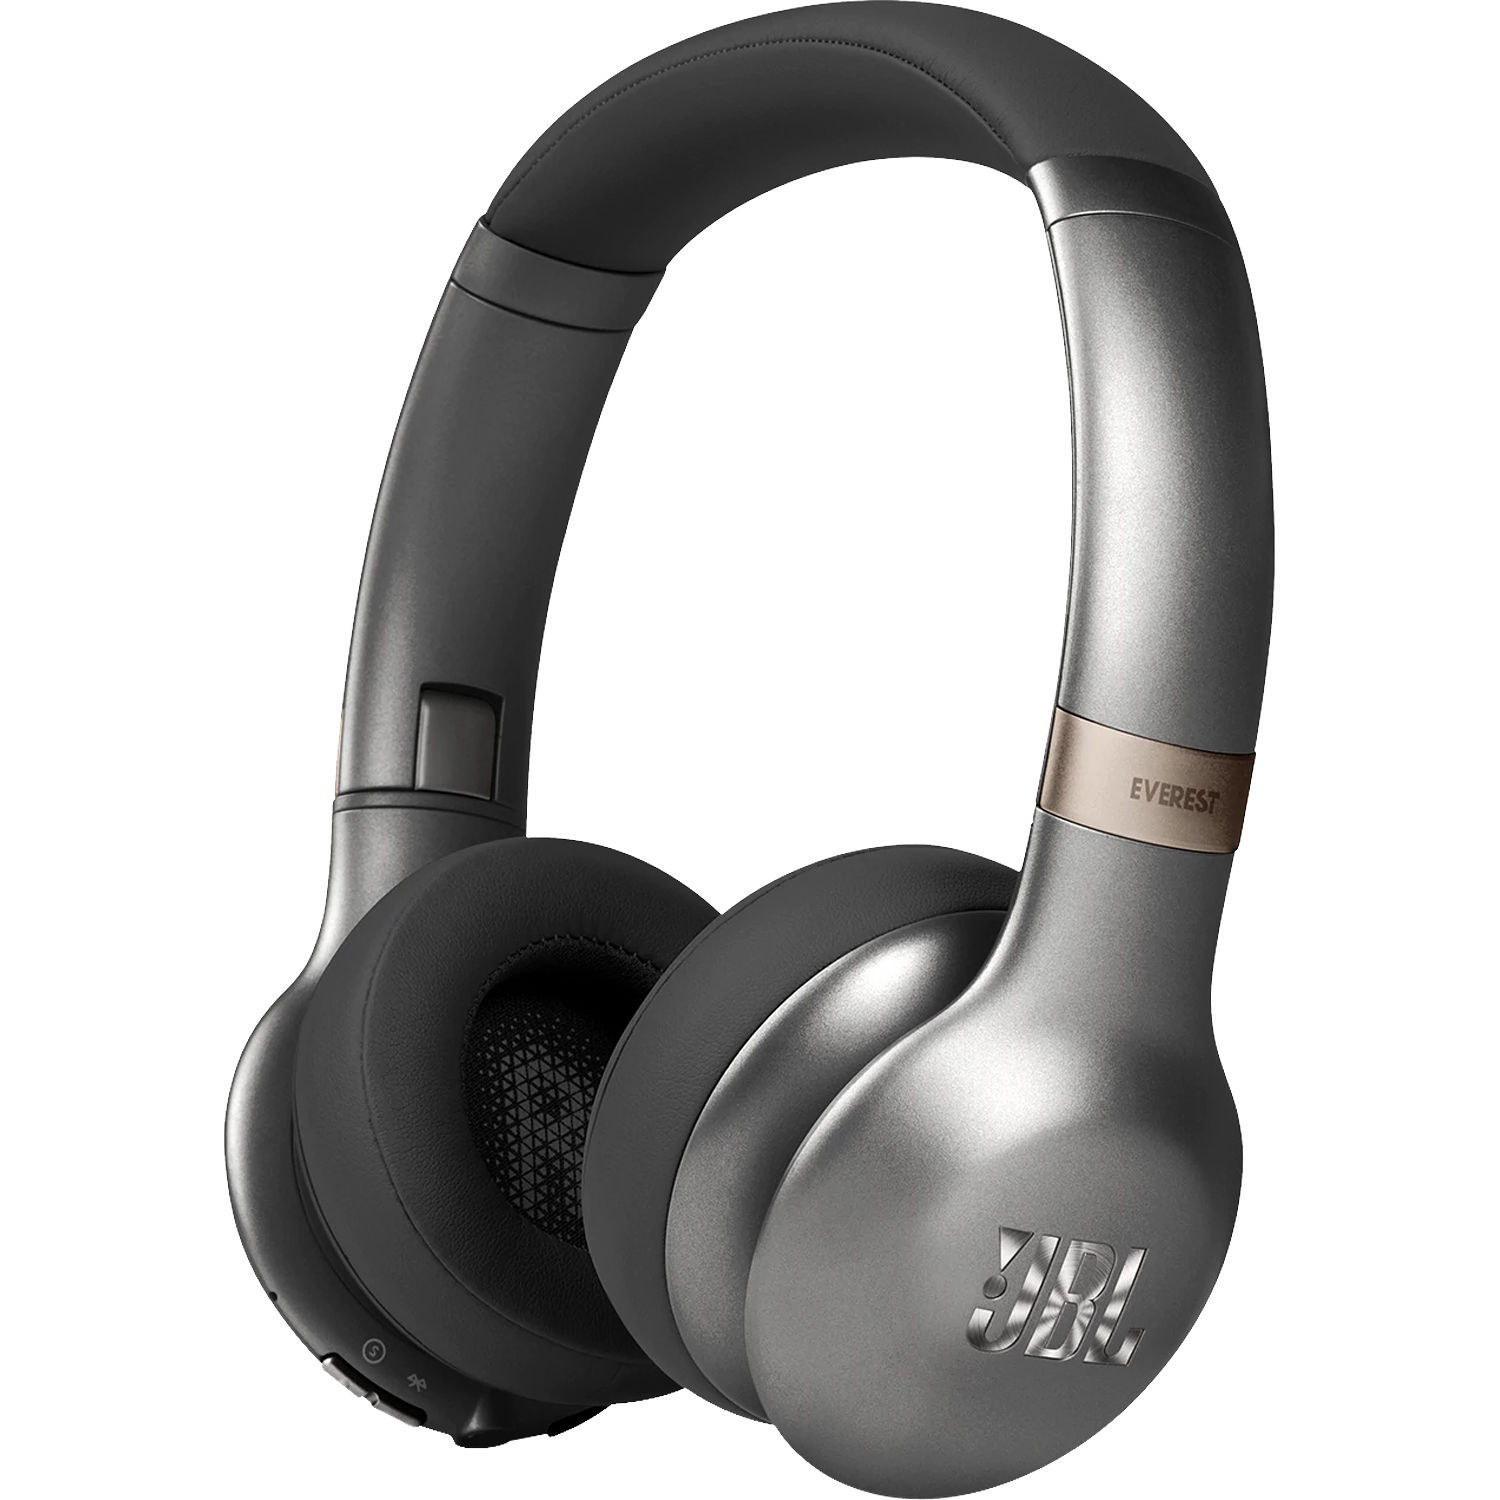 Jbl Everest 310ga Wireless Over Ear Headphones Jblv310gabtgml